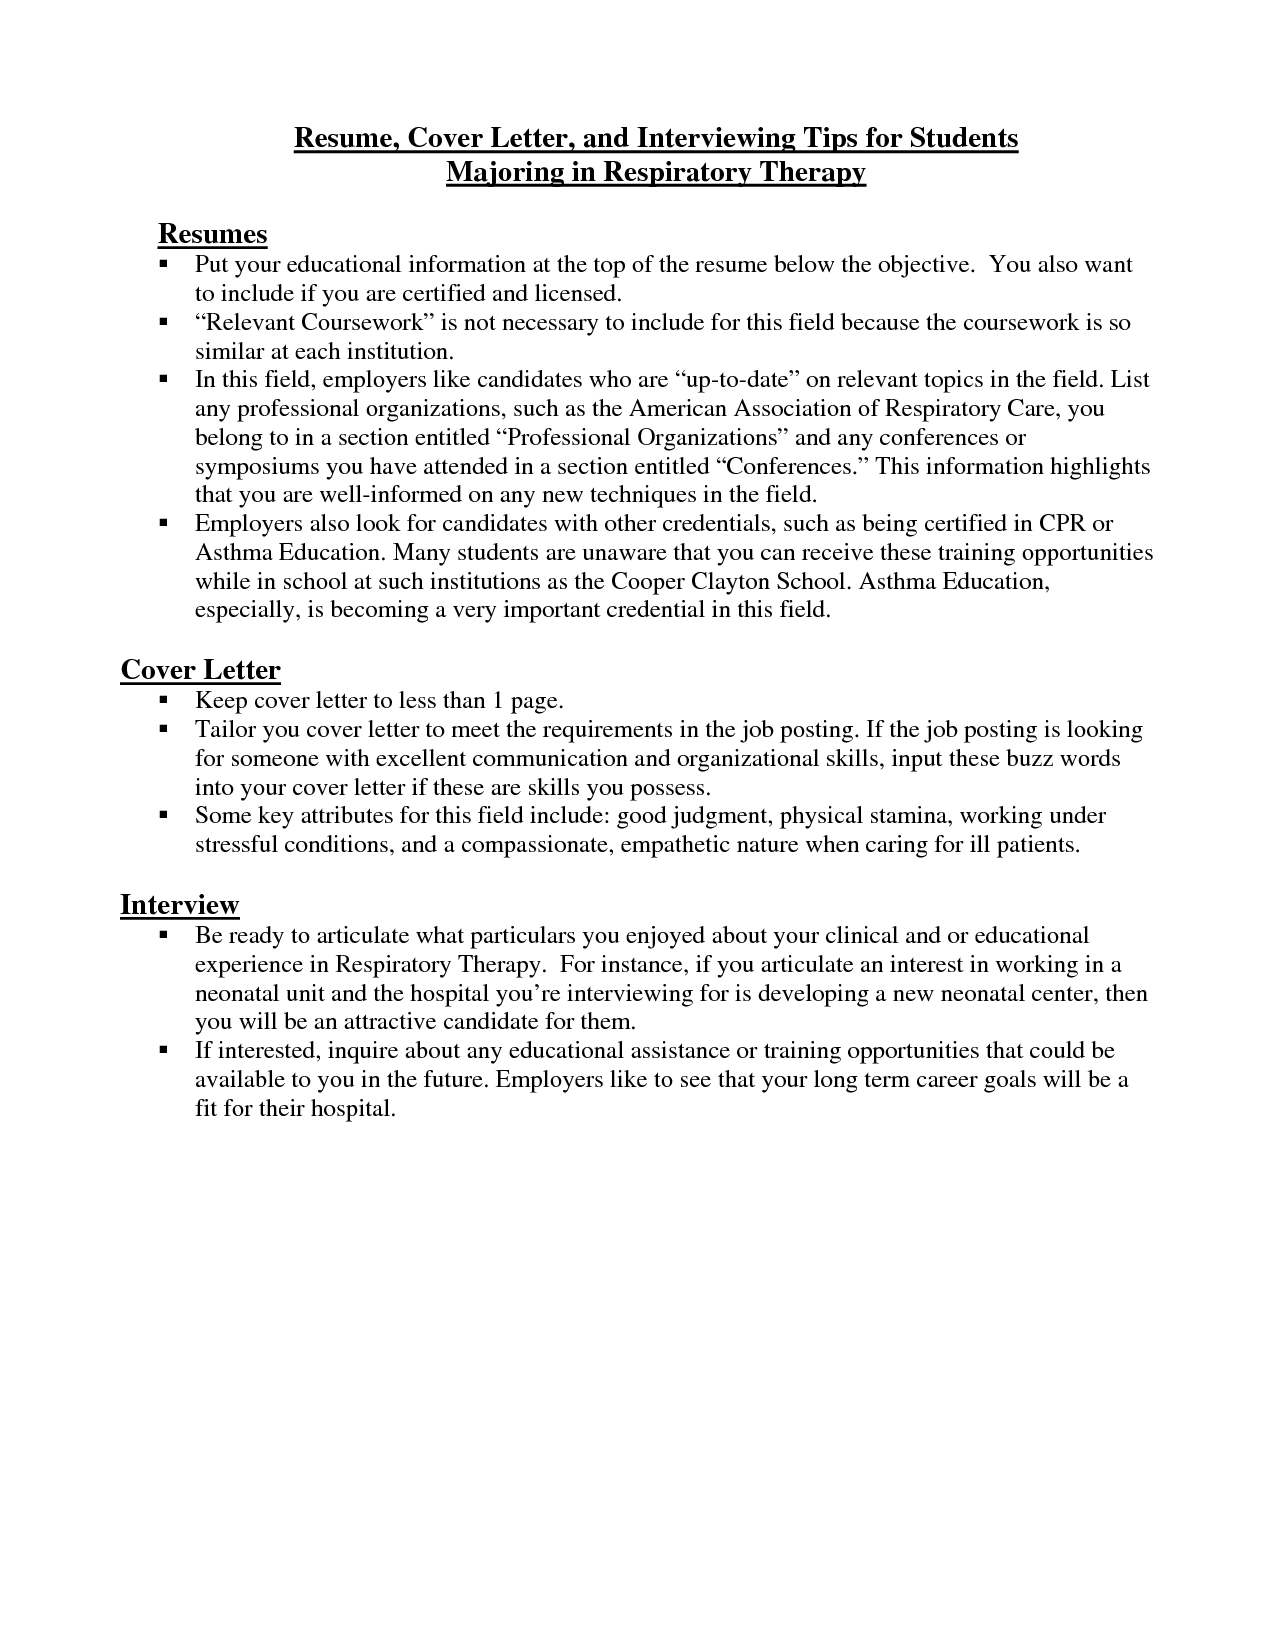 Cover Letter For Resume Examples For Students Respiratory Therapist Cover Letter  Resume Cover Letter And